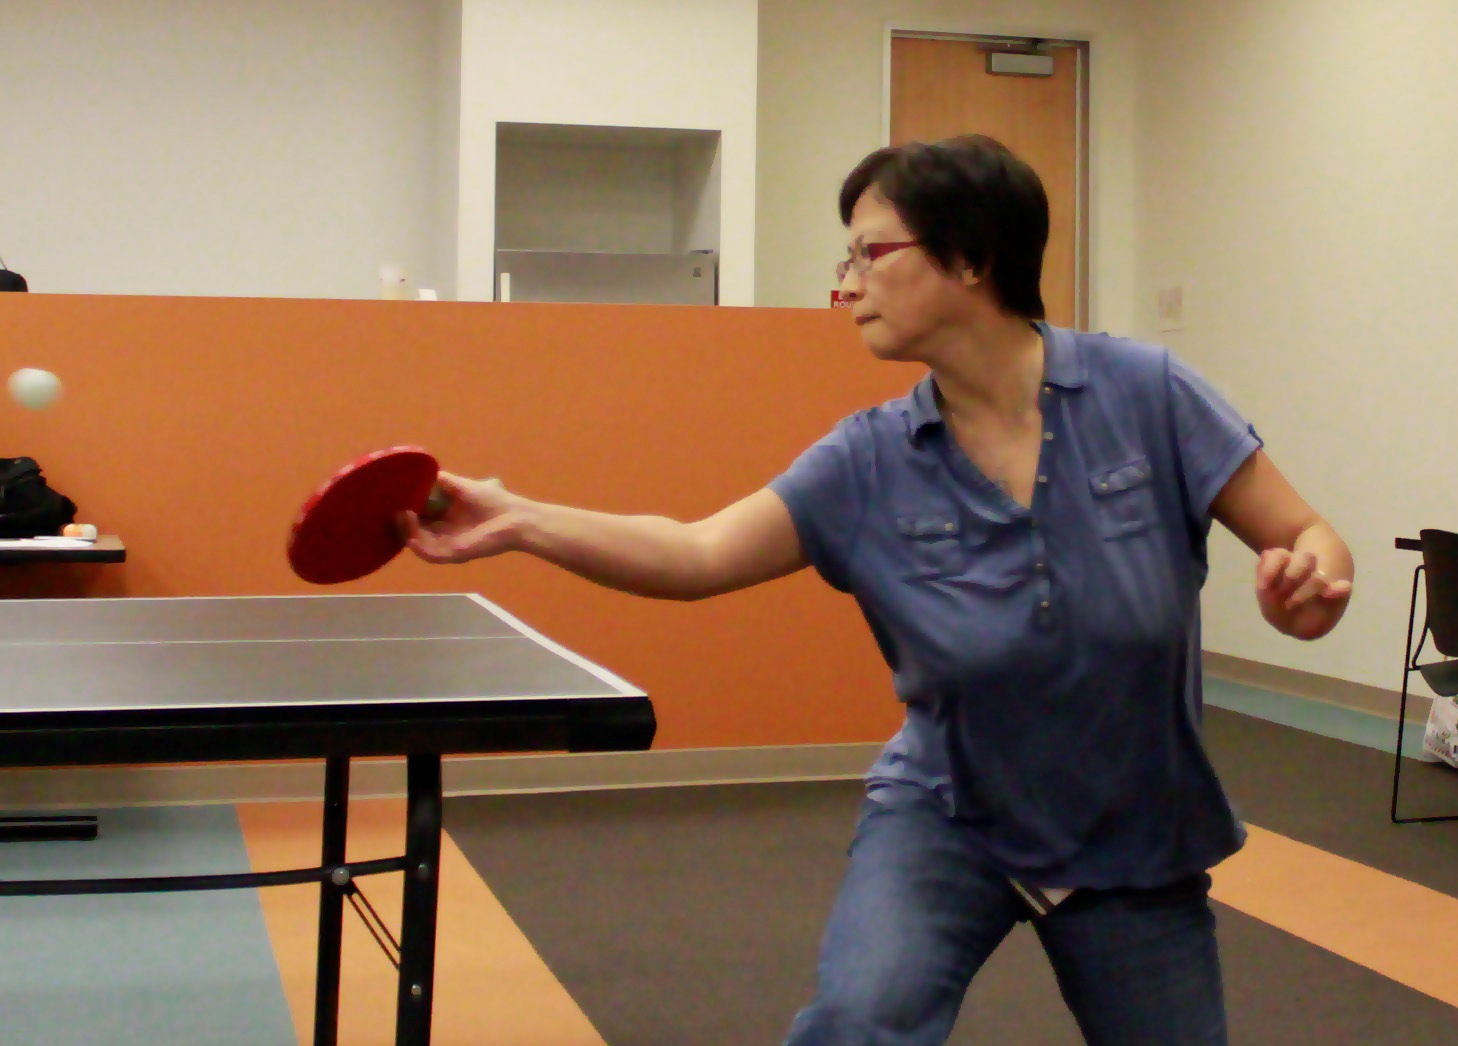 Technology Manager Tsing Xue's 'penhold' grip served her well at FindLaw's table tennis tournament last week. (Photo by FindLaw Software Development Engineer Anthony Hoang)